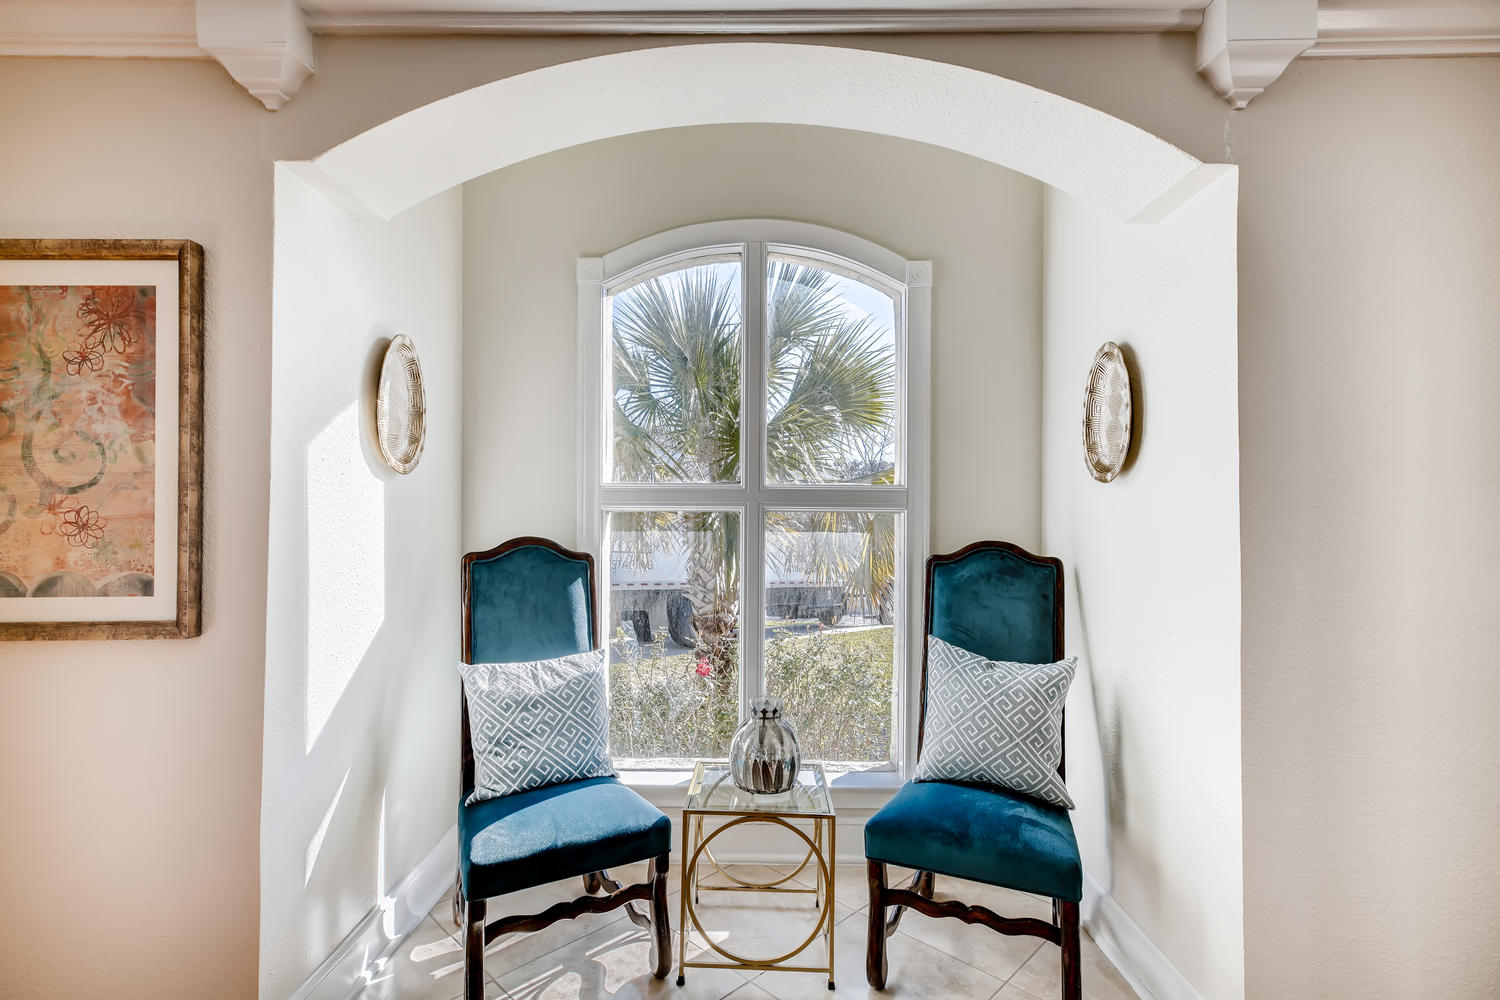 Full home staging in Las Vegas, Nevada, featuring a sitting area